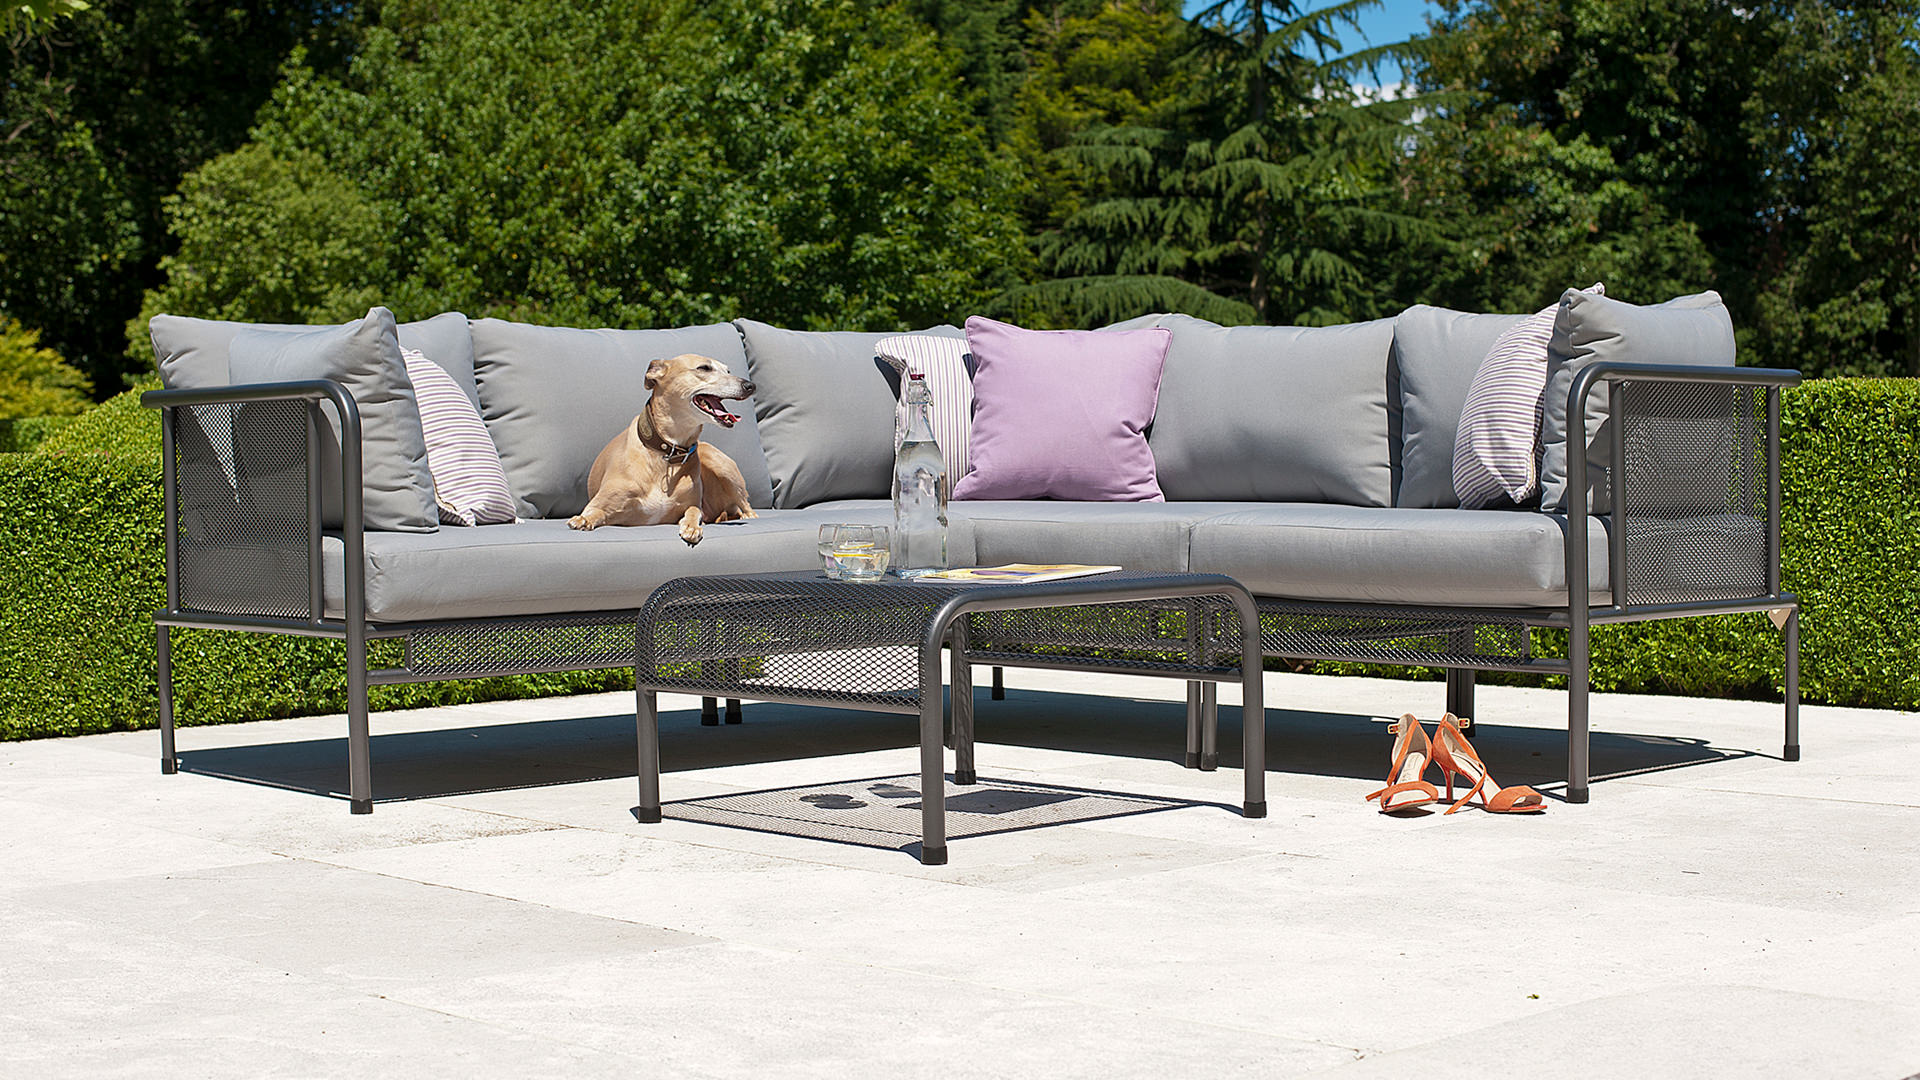 outdoor wooden sofa uk king we todd did garden furniture collections by alexander rose